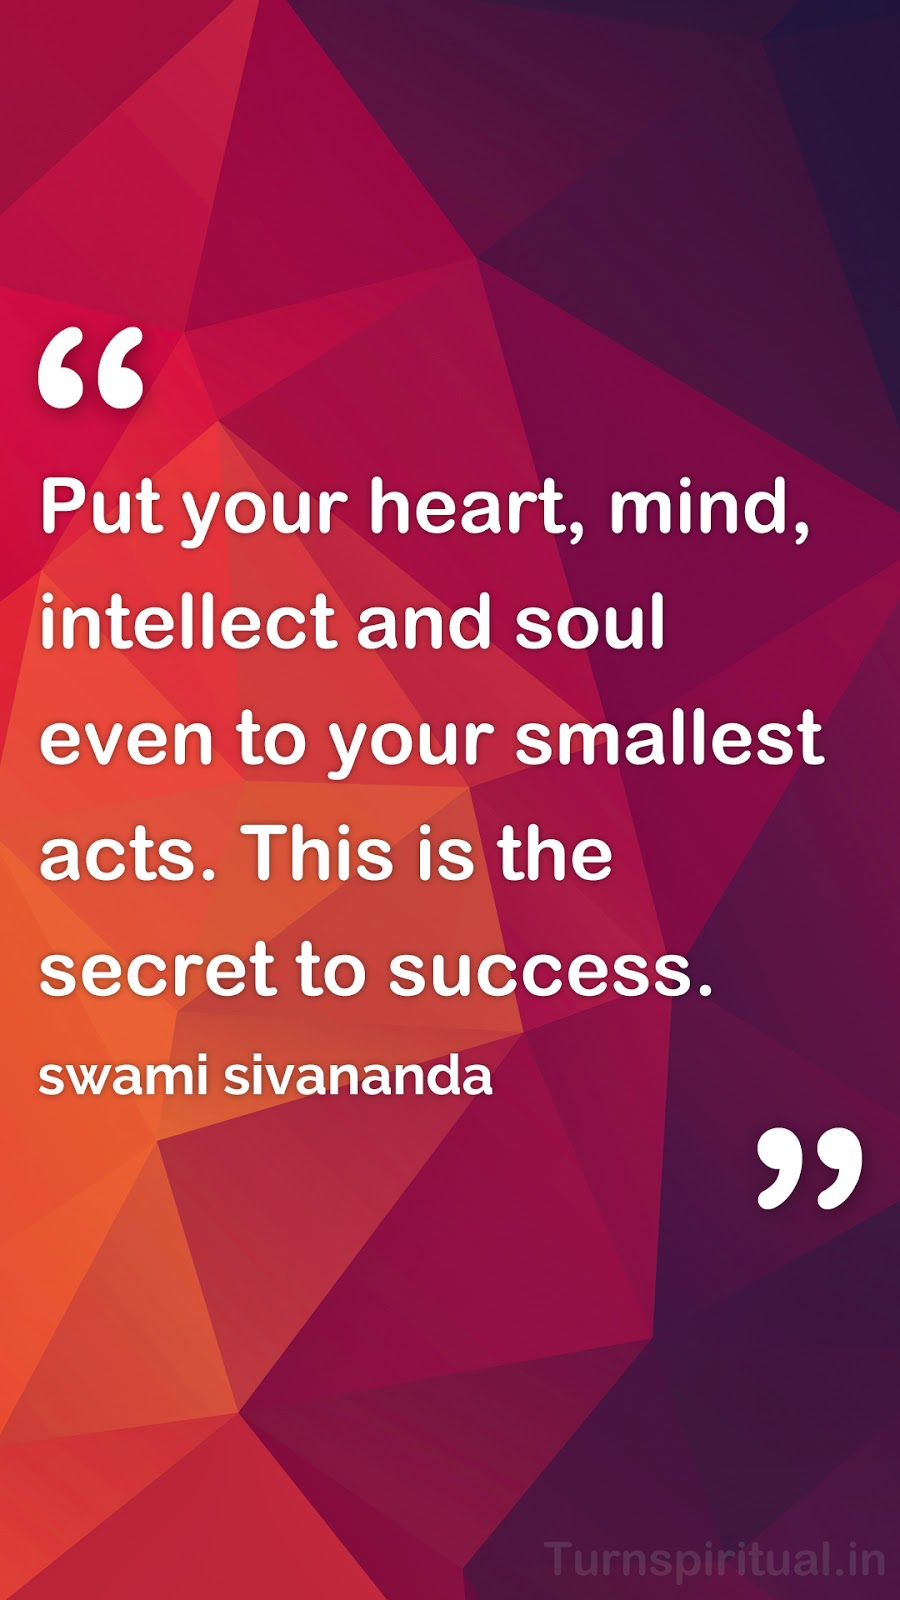 Good Morning 3d Source · 6 Lowpoly HD mobile wallpapers of Swami Sivananda Quotes Free Download Turnspiritual in